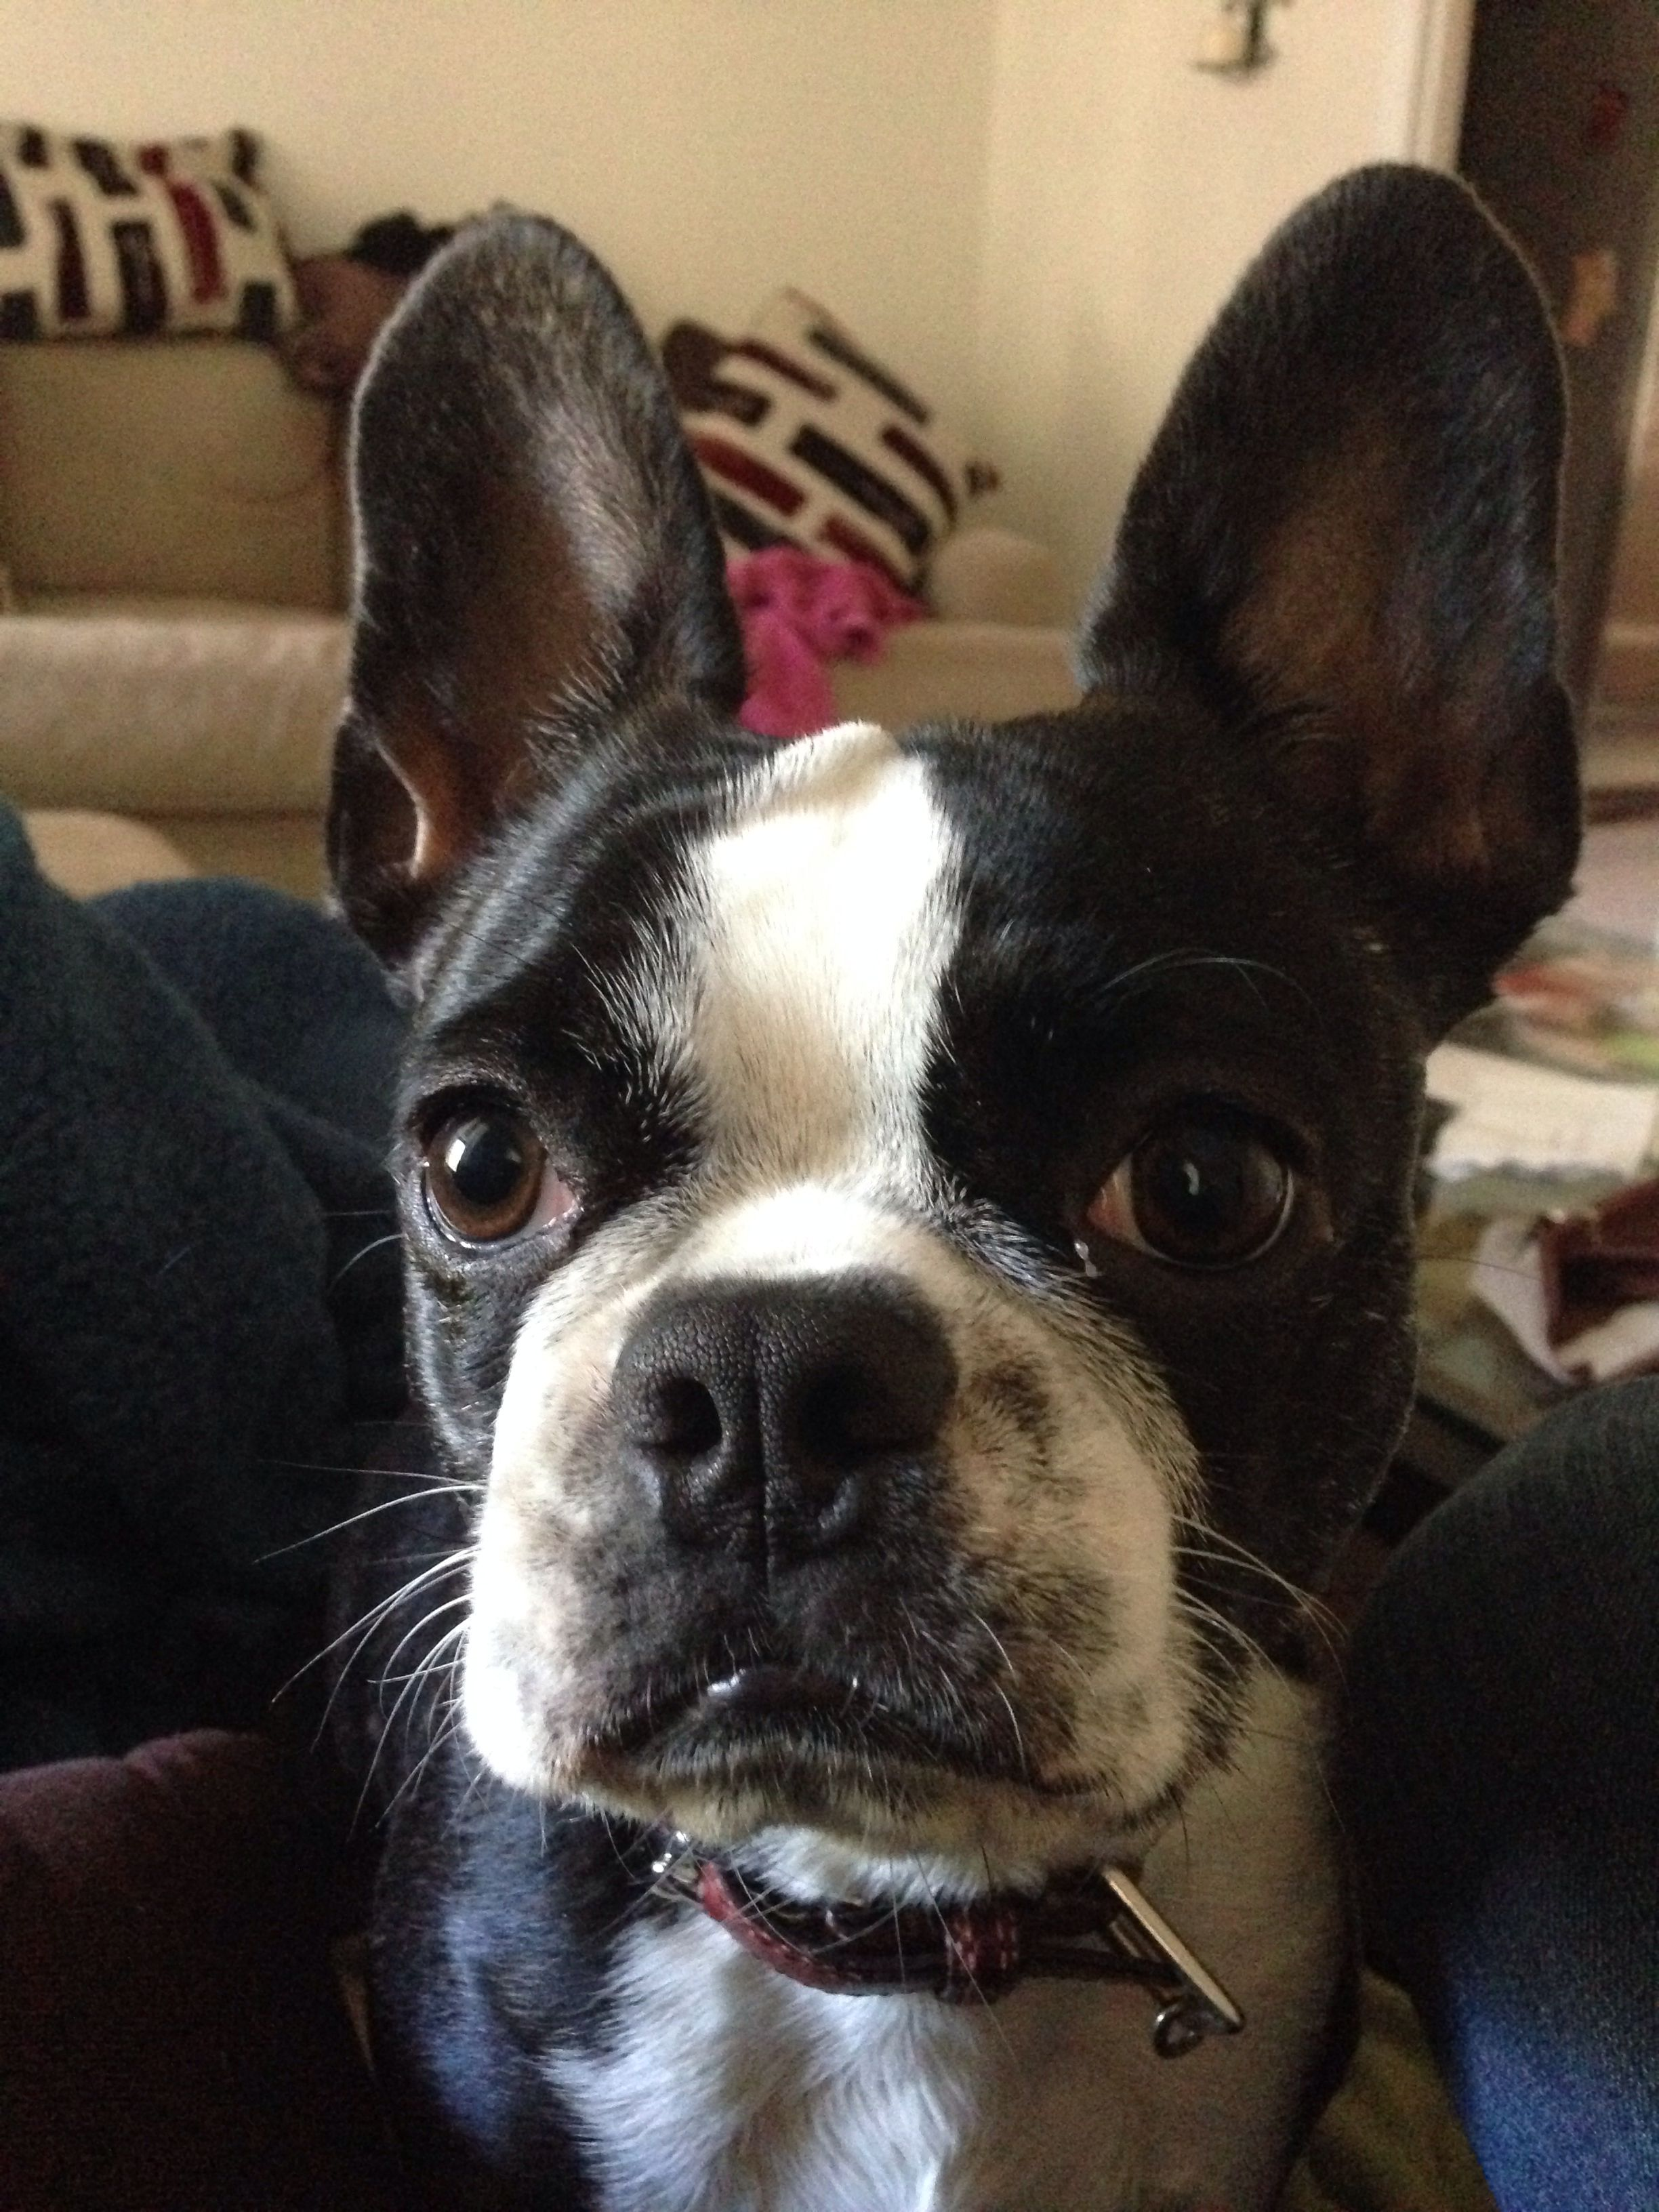 This Is A Frenchton A French Bulldog And Boston Terrier Mix Puppy And 100 Gorgeous Terrier Mix Boston Terrier Dog Cat